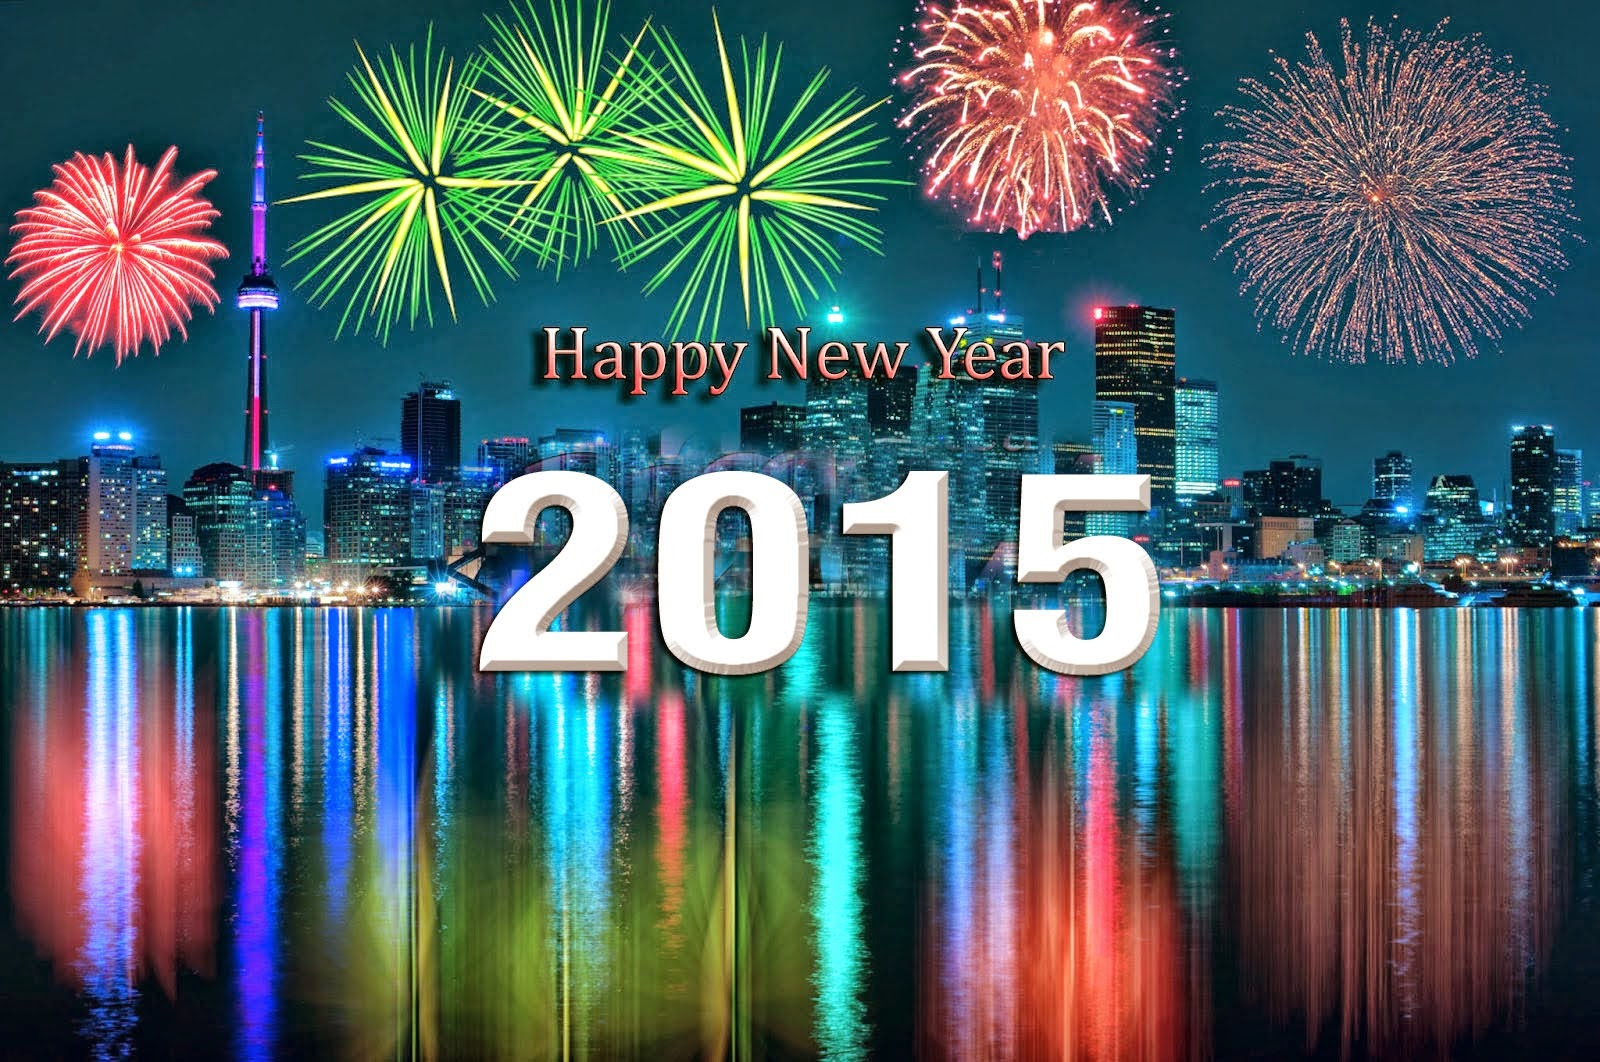 Latest Happy New Year 2015 Wallpapers and Images